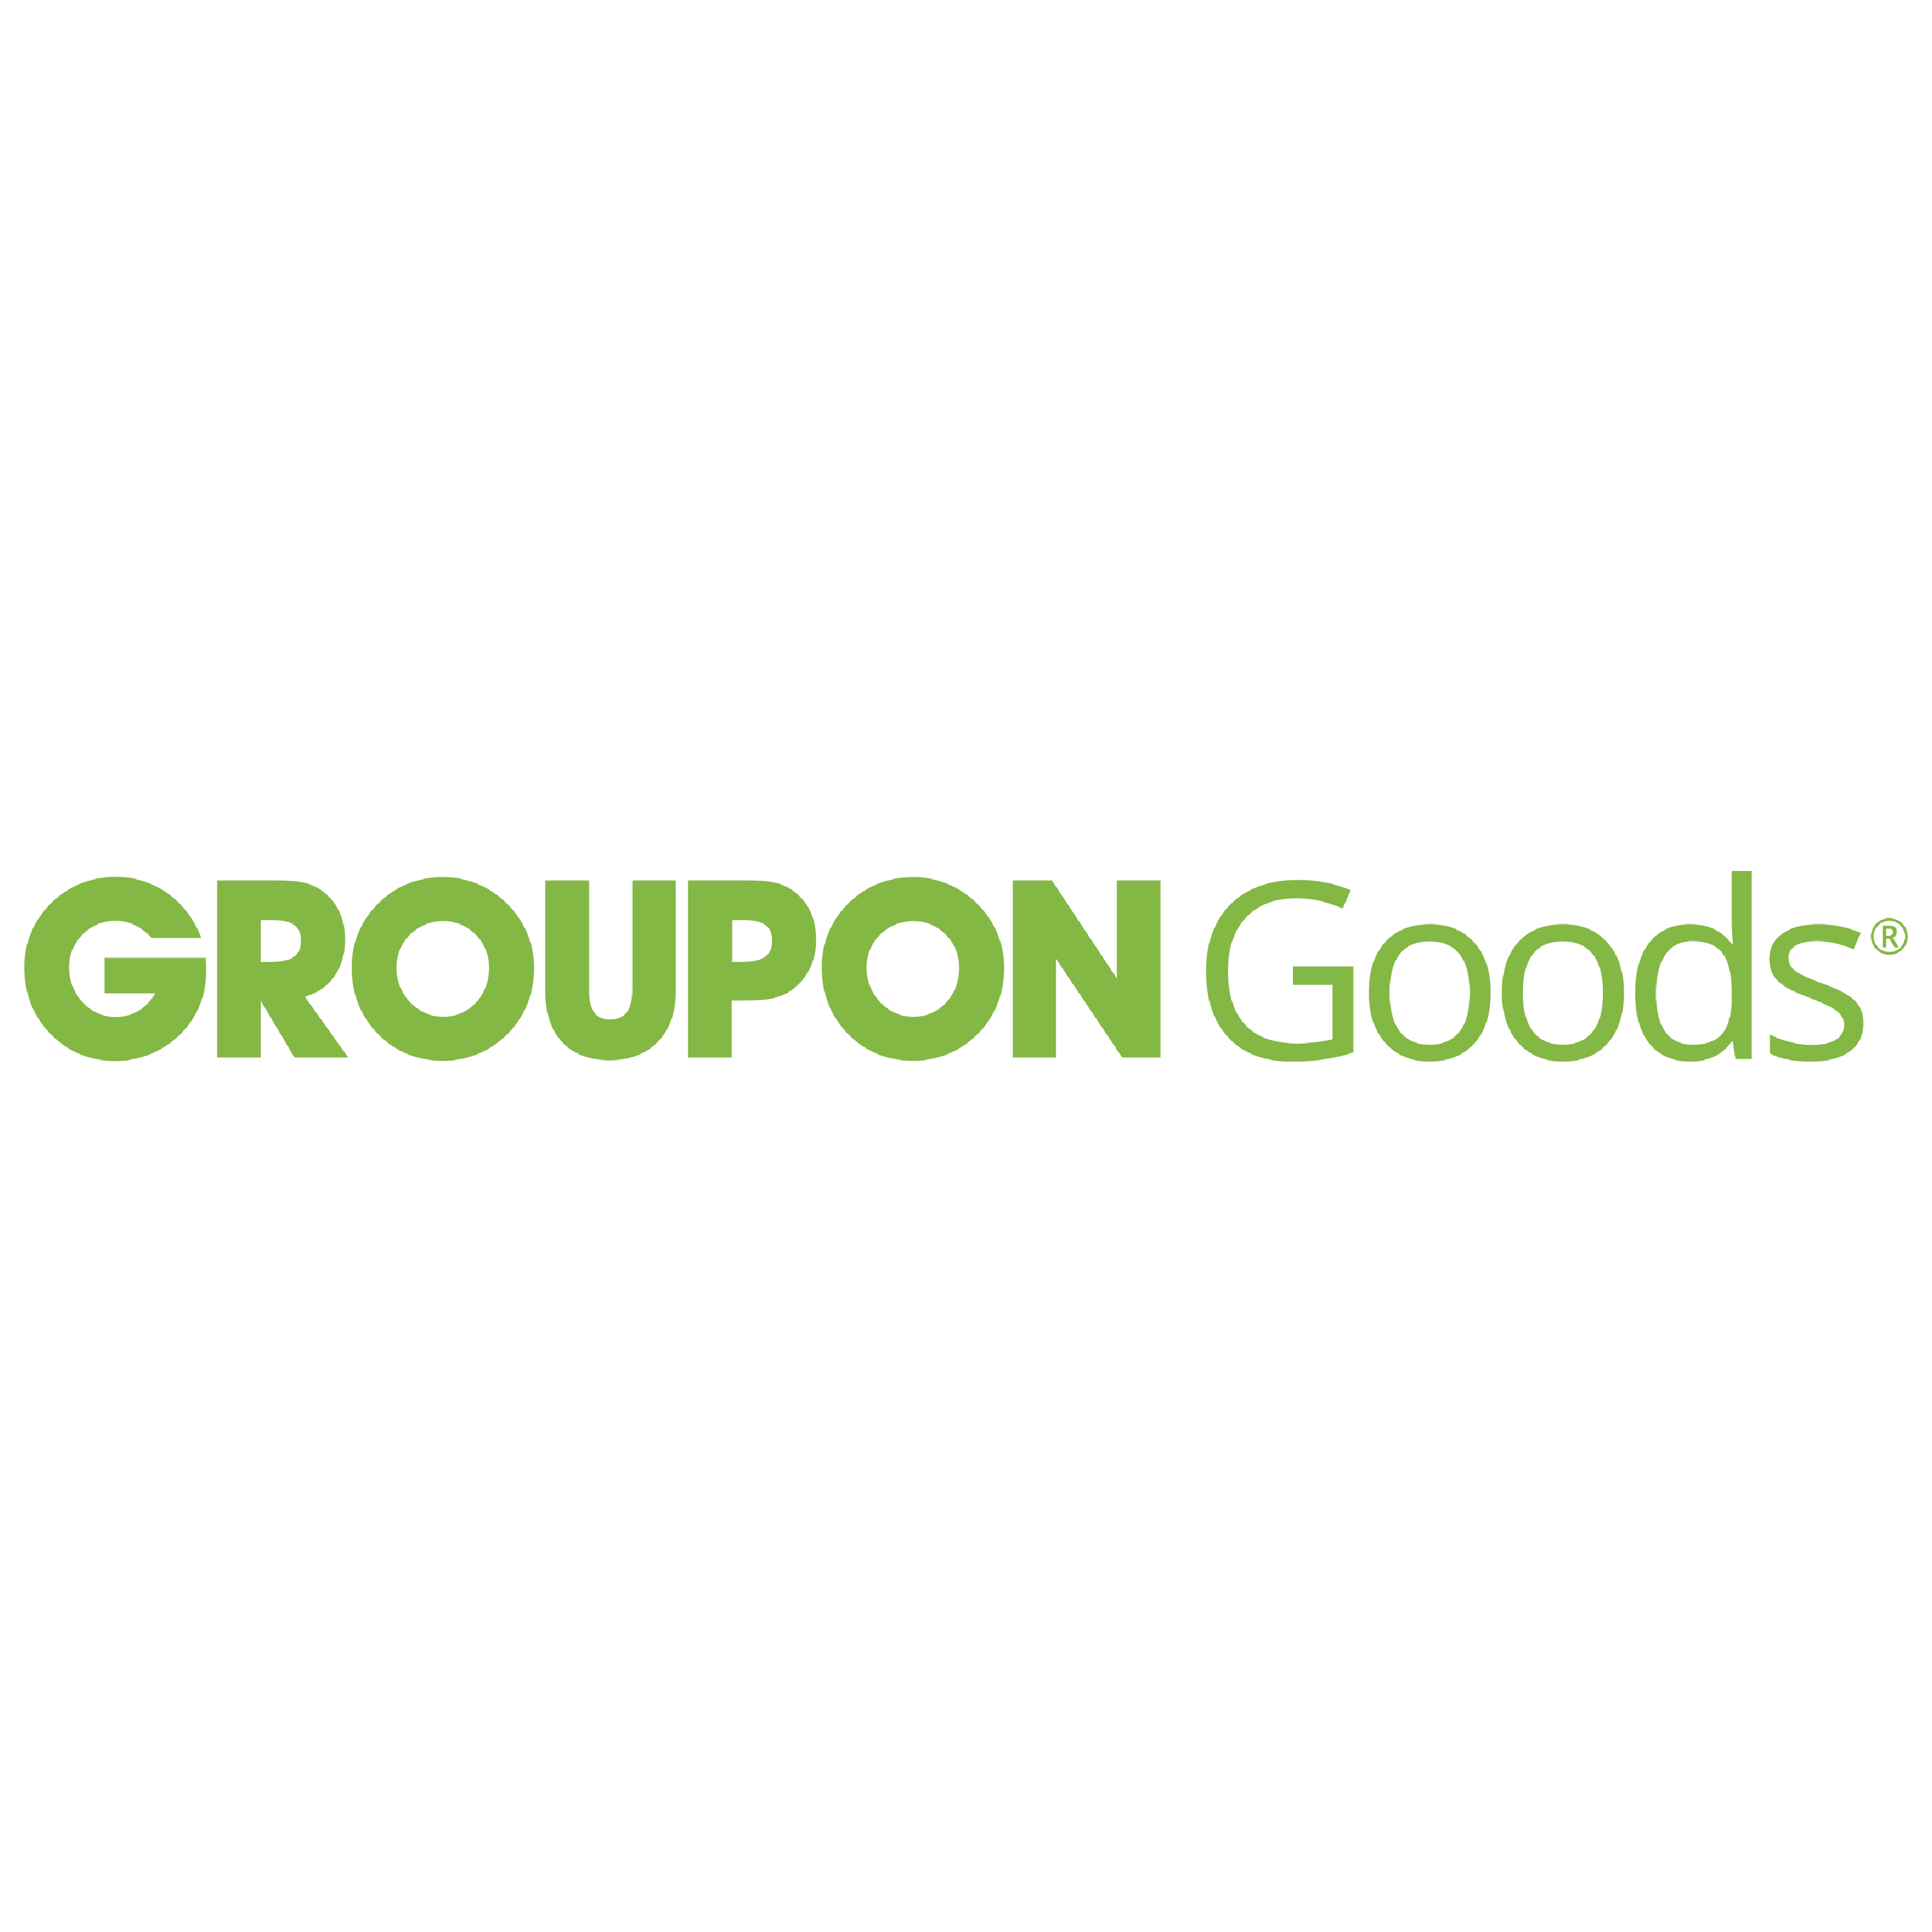 Groupon Goods Shipedge Integration